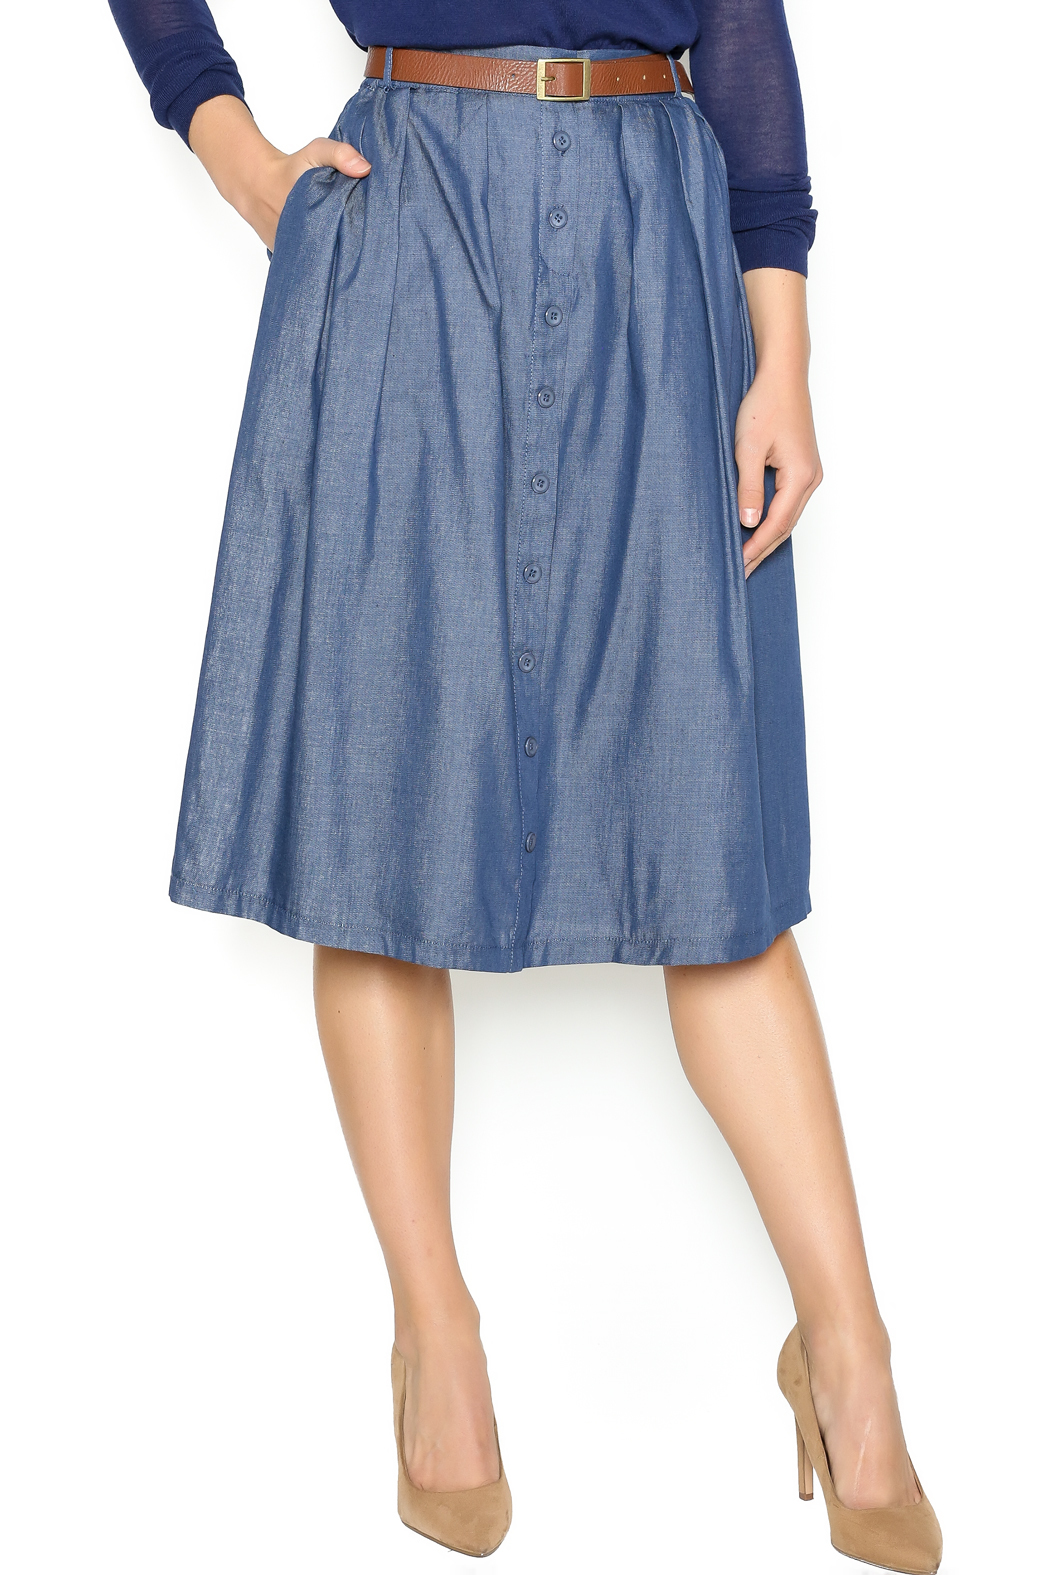 77b2ffc30771 Comme Toi Chambray Midi Skirt from Utah by Jolley's Gifts and ...